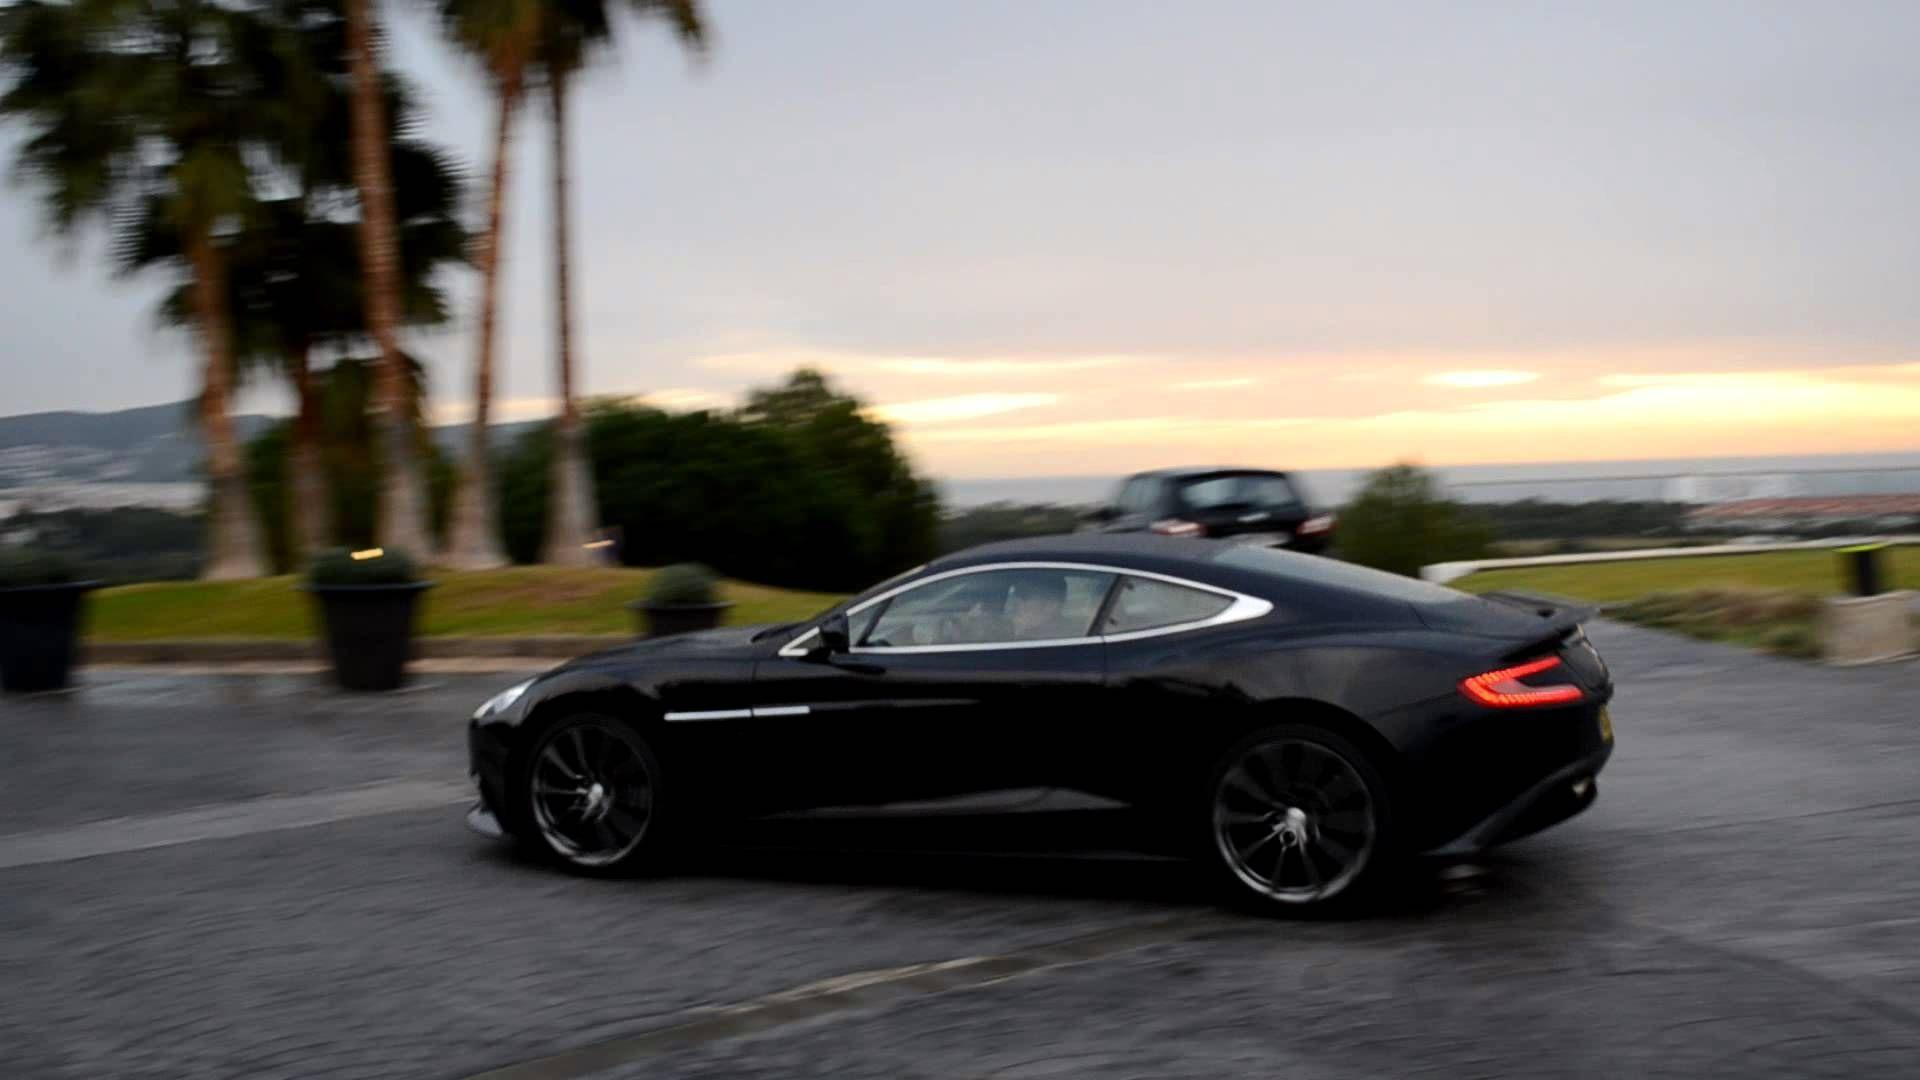 Picture 2016, 2015 Aston Martin Vanquish Carbon Black Cool Car